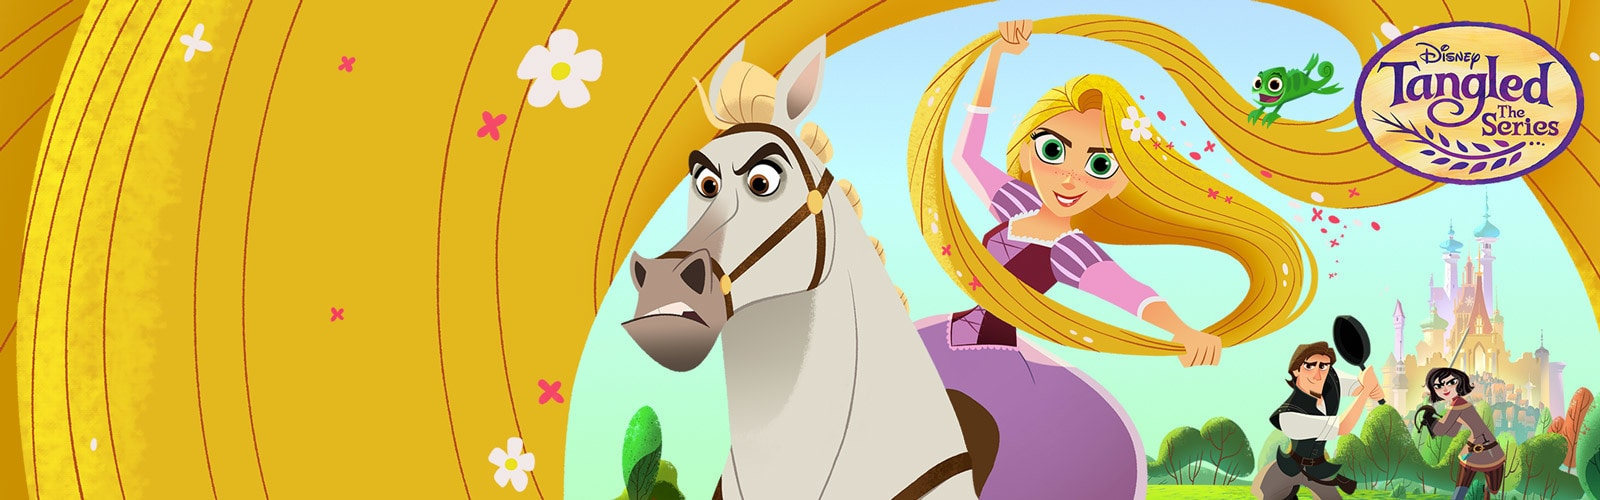 Tangled: The Series HERO Promo - PH